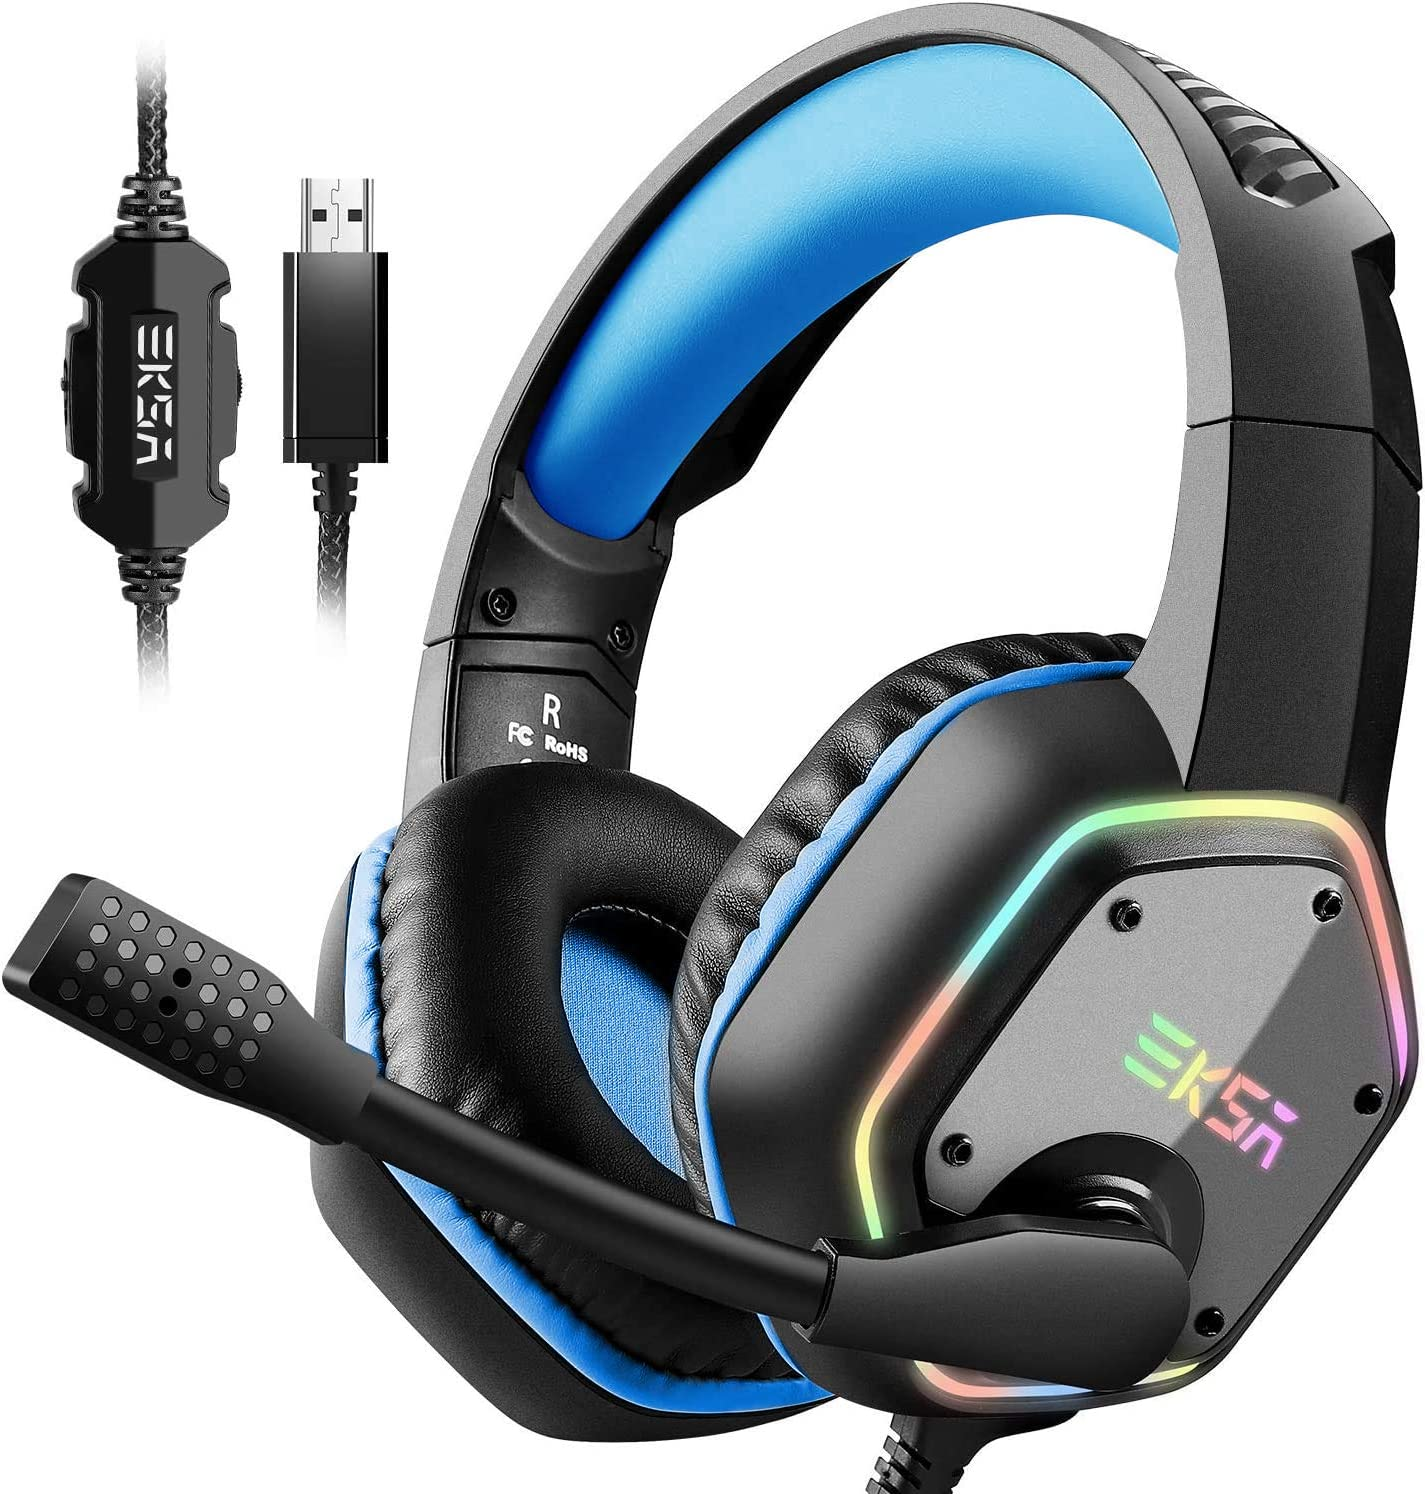 EKSA Gaming Headset with 7.1 Surround Sound Stereo, PS4 USB Headphones with Noise Canceling Mic & RGB Light, Compatible with PC, PS4 Console, Laptop (Blue)